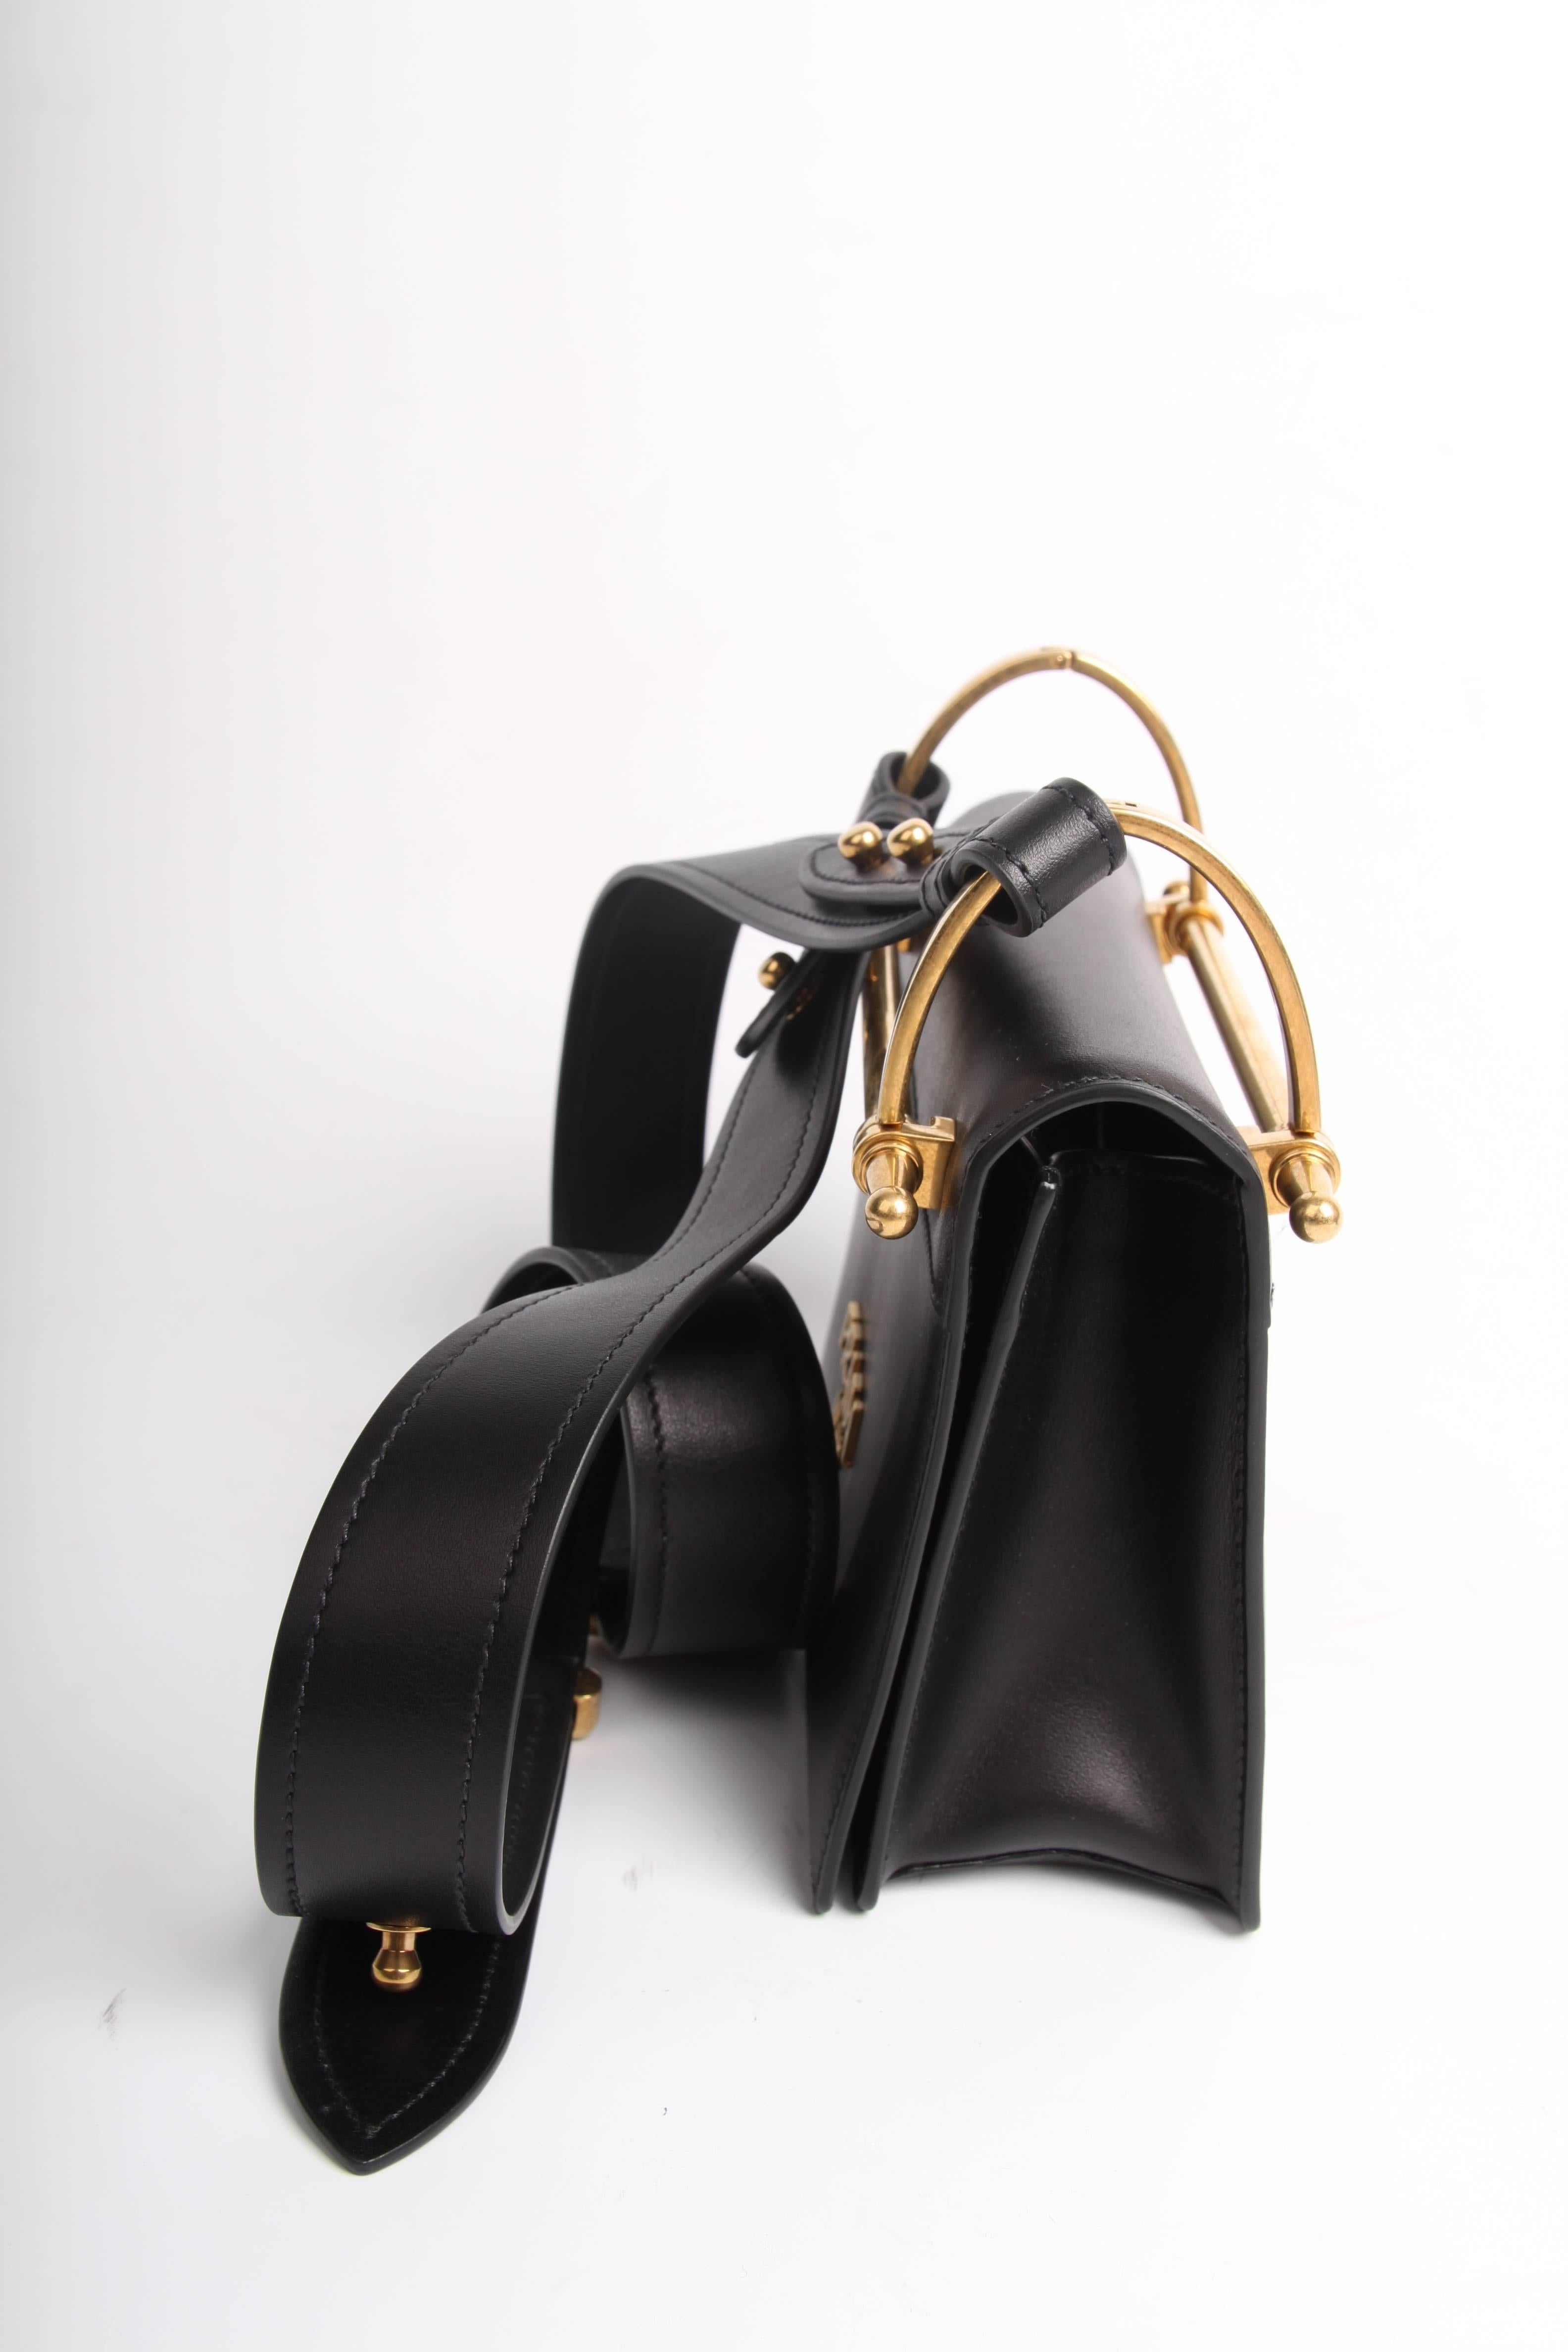 ... germany nice bag by prada with the name antic soft shoulder bag.  crafted 3832d 32dff 867616fd9b248